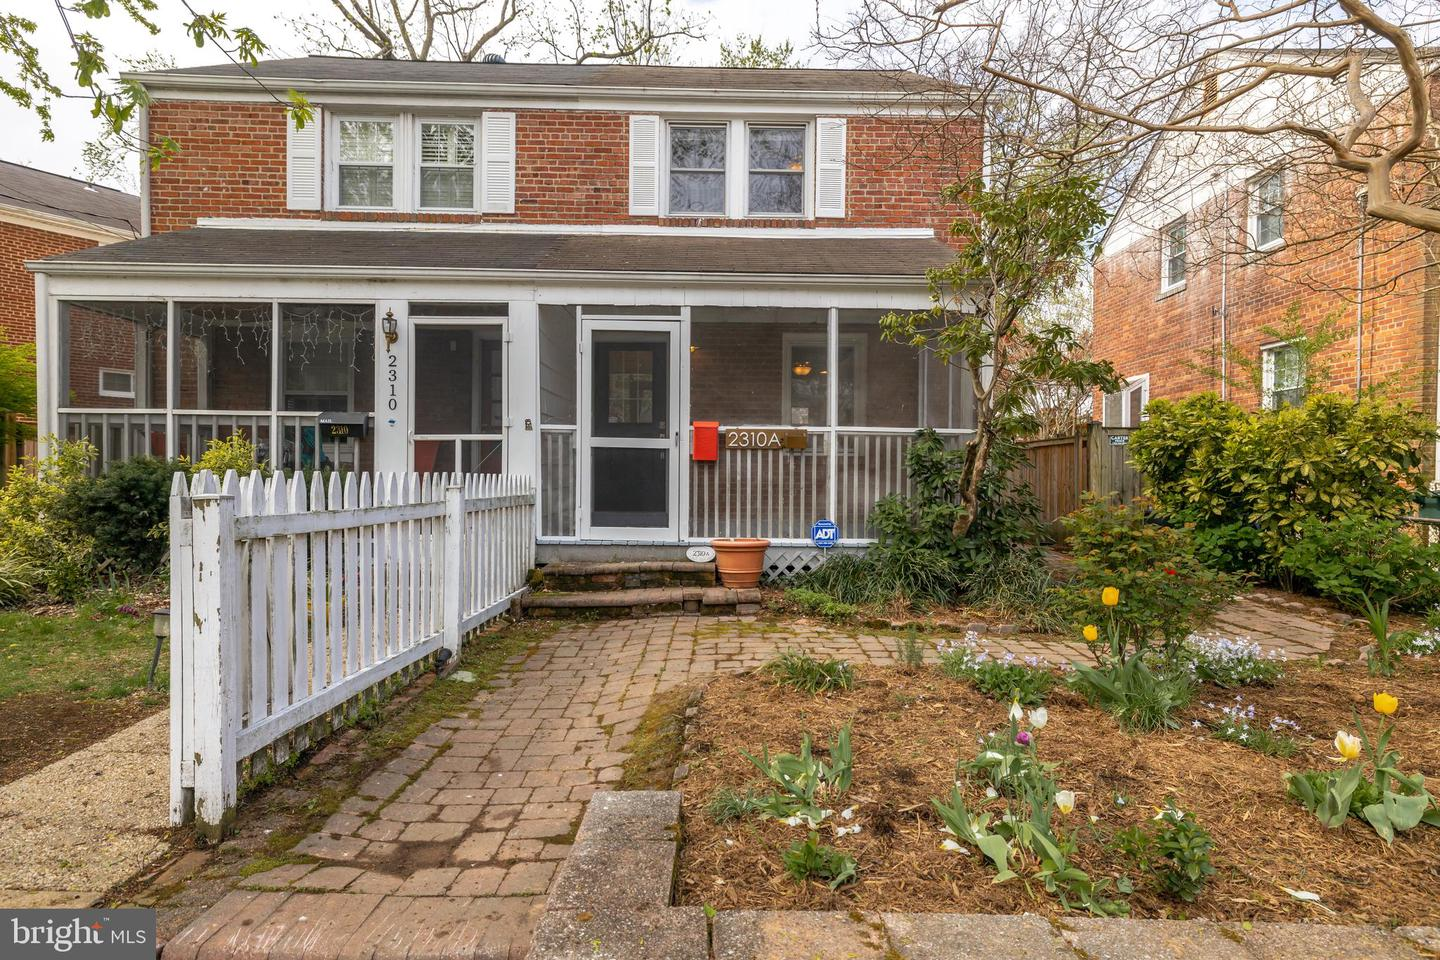 2310A Randolph Avenue   - Alexandria, Virginia 22301